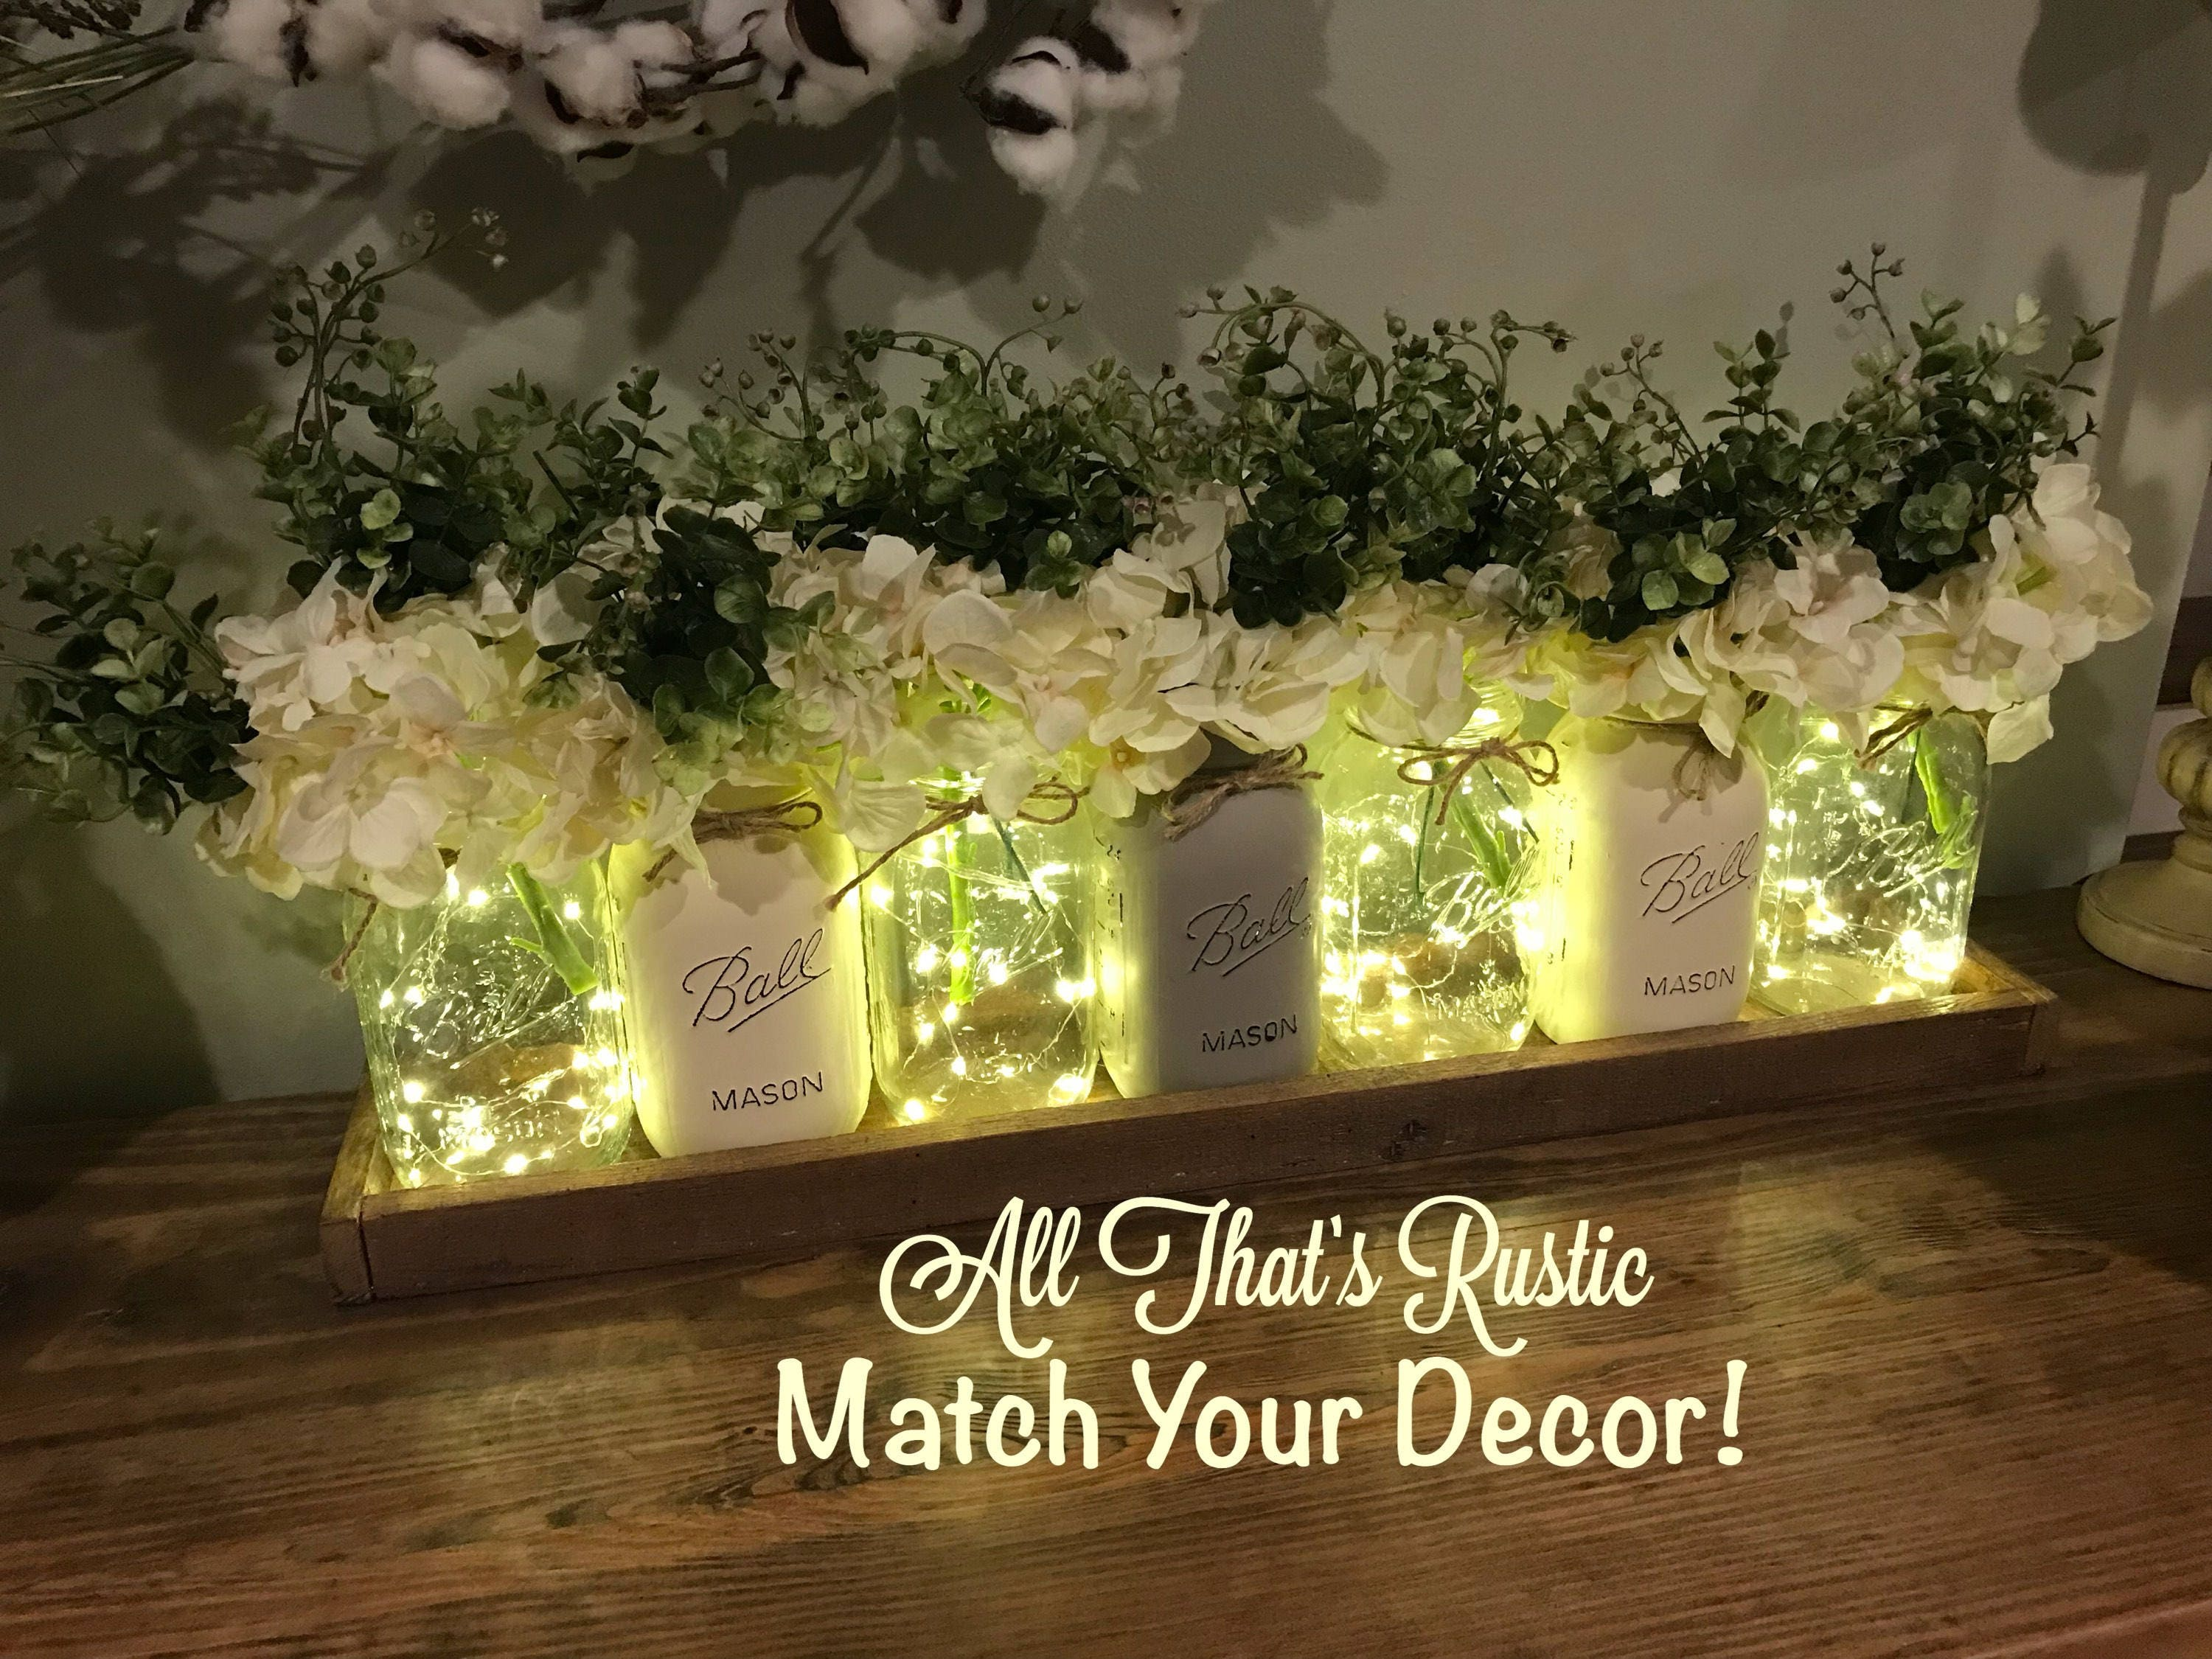 wedding decor, wedding centerpiece, greenery, flower arrangement, mason jar  decor, mason jar centerpiece, rustic wedding decor, rustic decor